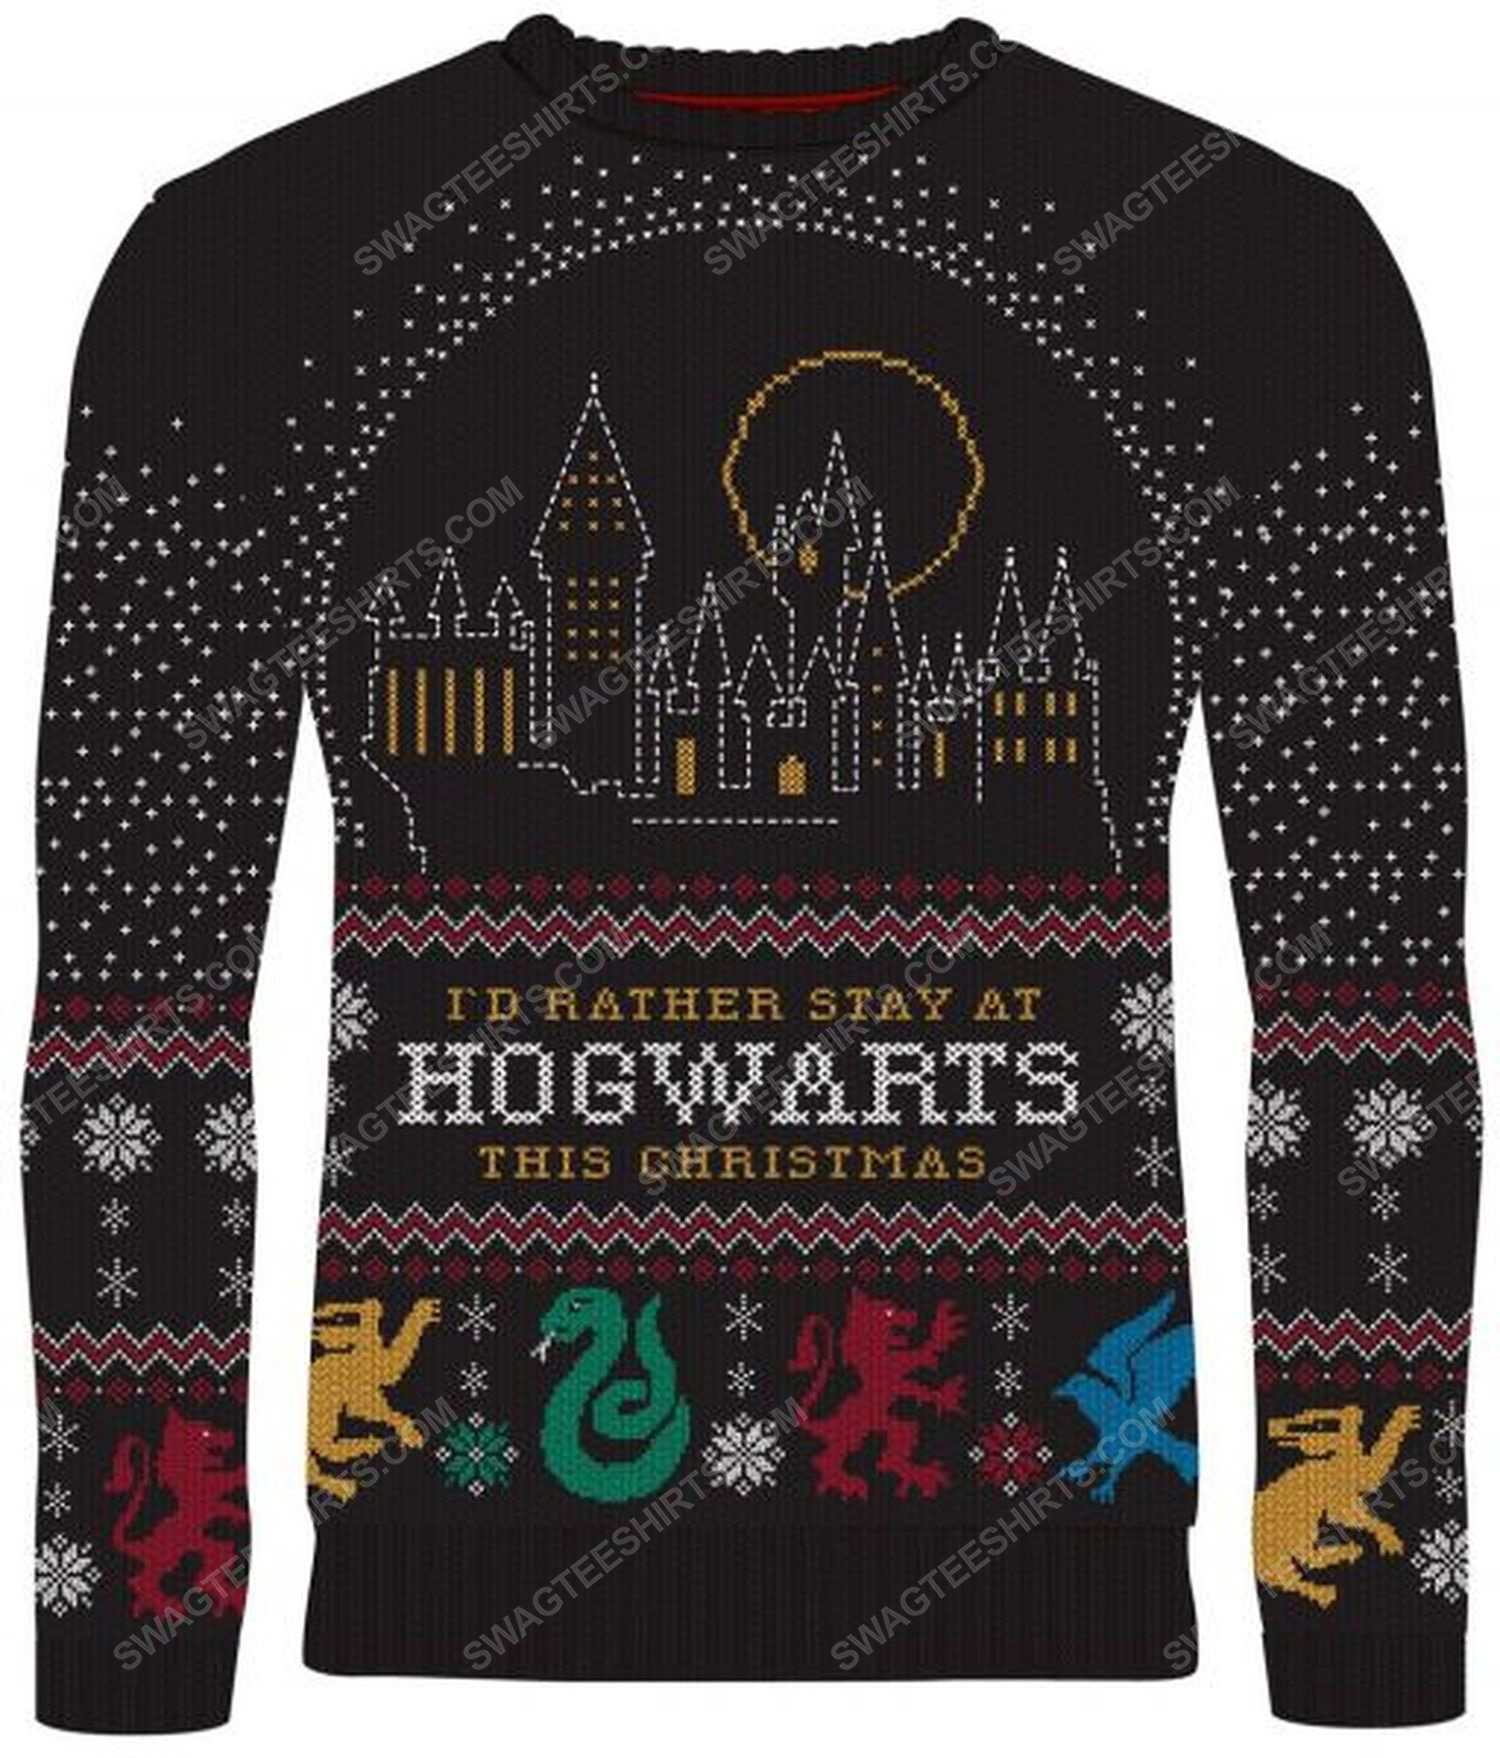 Harry potter i'd rather stay at hogwarts this christmas full print ugly christmas sweater 1